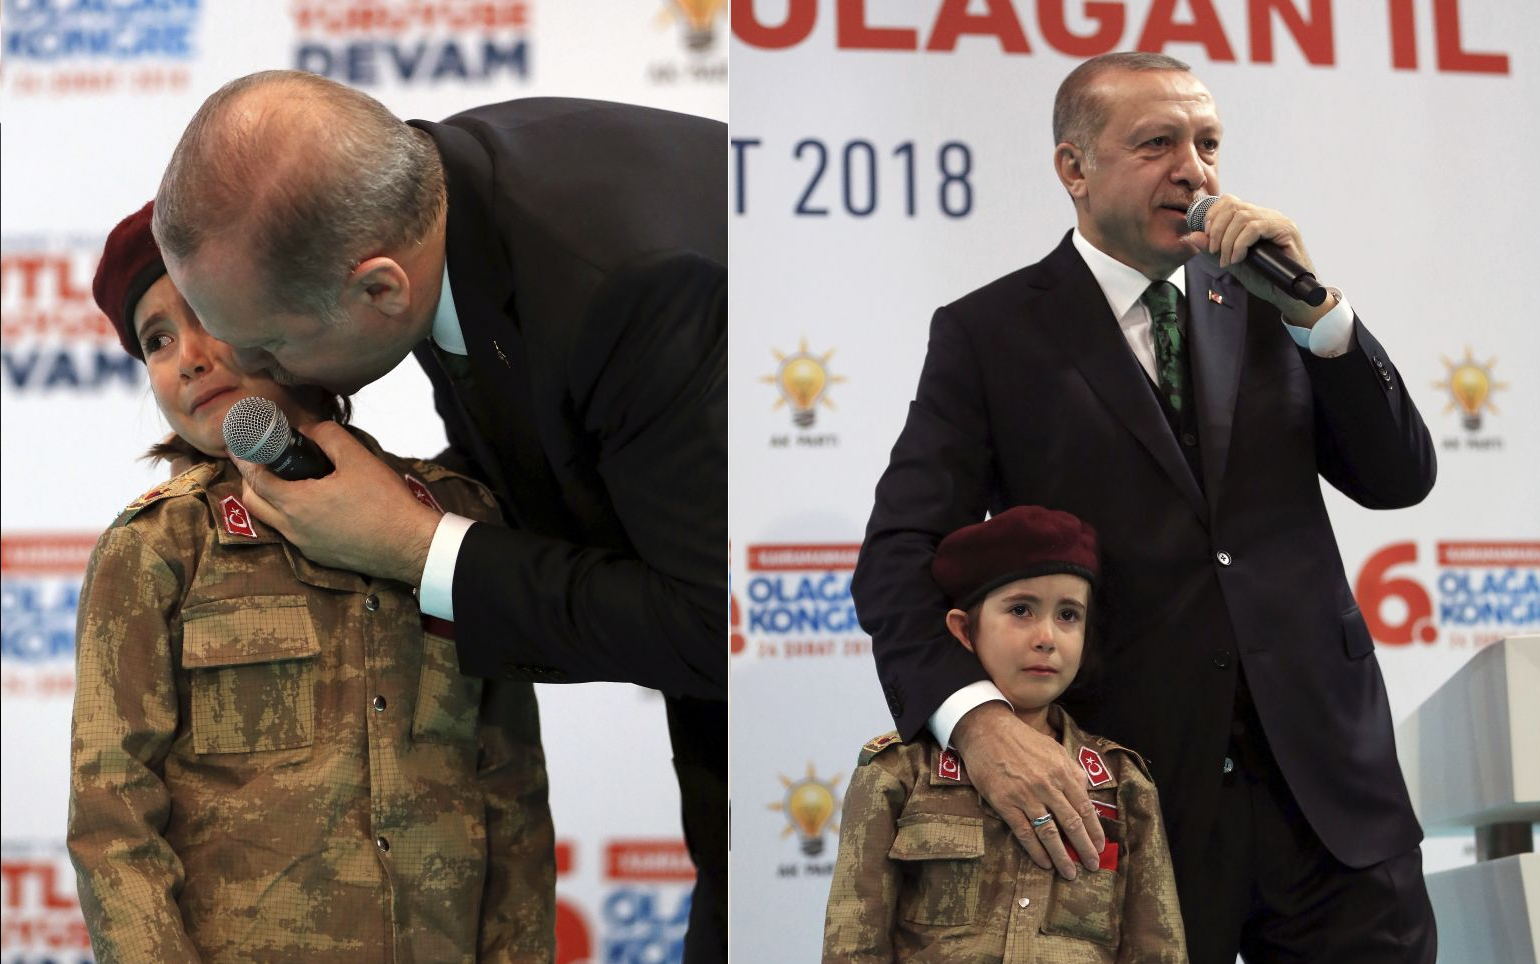 Turkey's Erdogan tells crying six-year-old child she would be honoured to die a martyr on live TV…